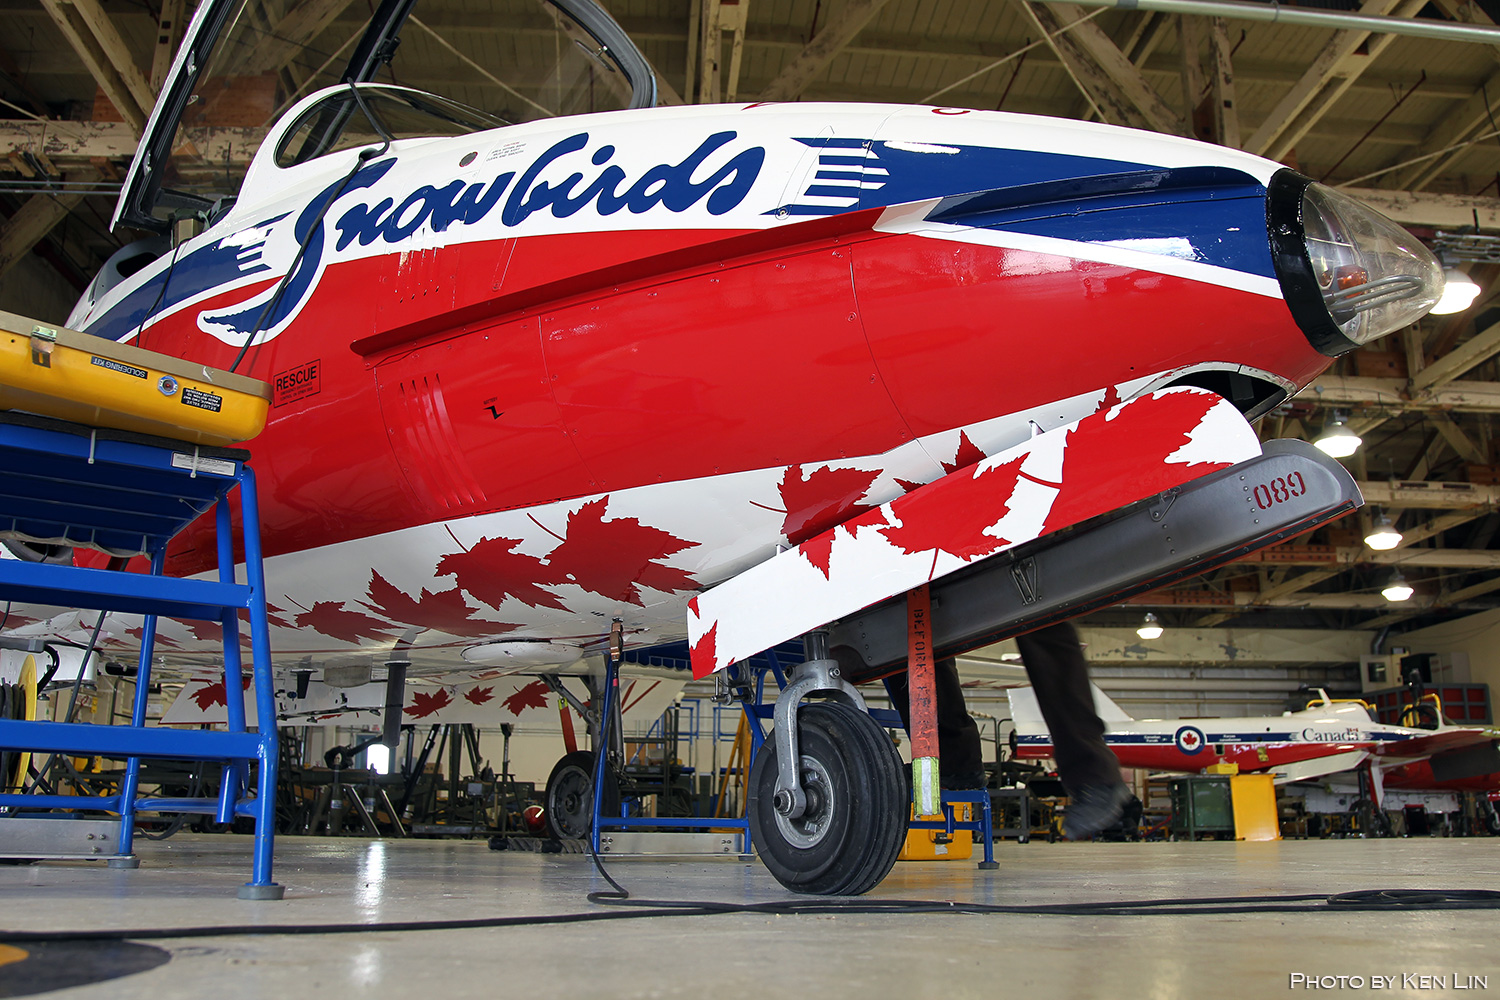 "The ""Canada 150"" Tutor's livery includes the iconic red, white and blue colour scheme, as well as design elements emphasizing Canada's historic 150th anniversary celebration. The official ""Canada 150"" logo is placed on the nose and wings. The tail carries the official name of the celebration – ""Canada 150"" – while underpart of the aircraft displays 150 red maple leaves. PHOTO: © Ken Lin"